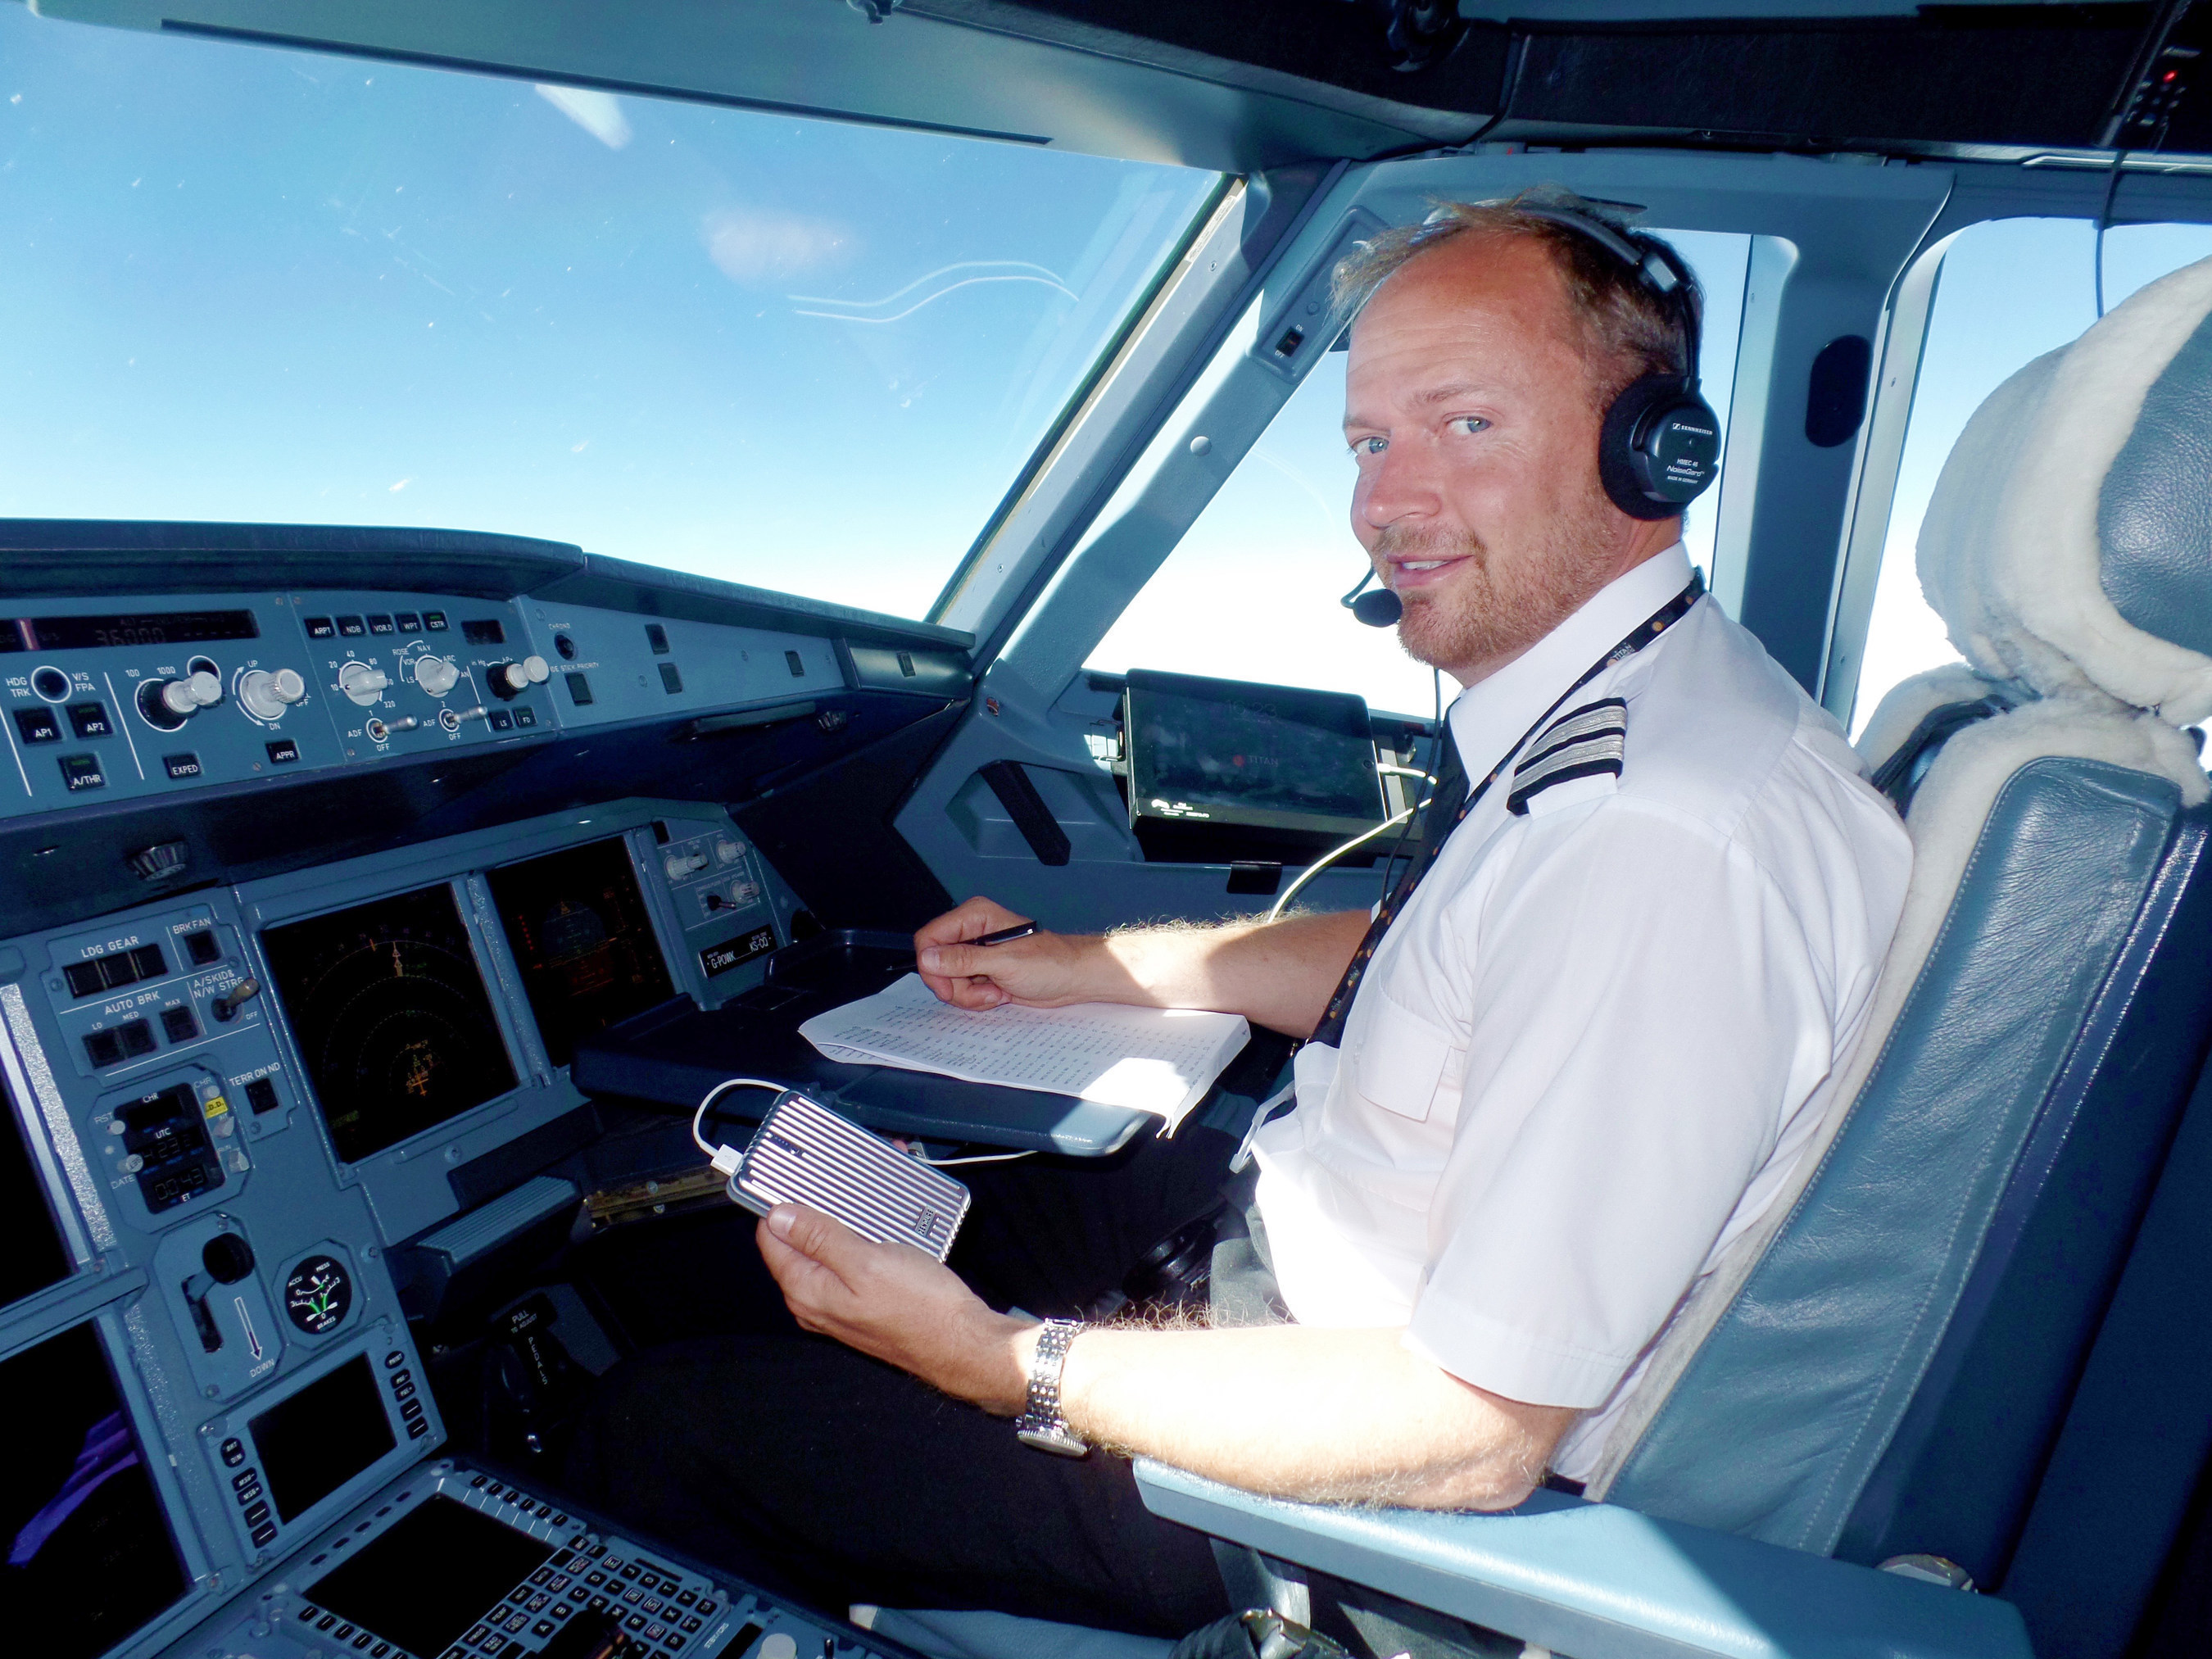 """Titan Airways A320 First Officer Oliver Pickstock Holding the Zendure A5 External Battery during a Flight. """"It's a great product, allowing us to get maximum utilization from our EFBs."""" said Titan Airways A320 First Officer Oliver Pickstock, """"It's stylish and provides loads of power."""""""